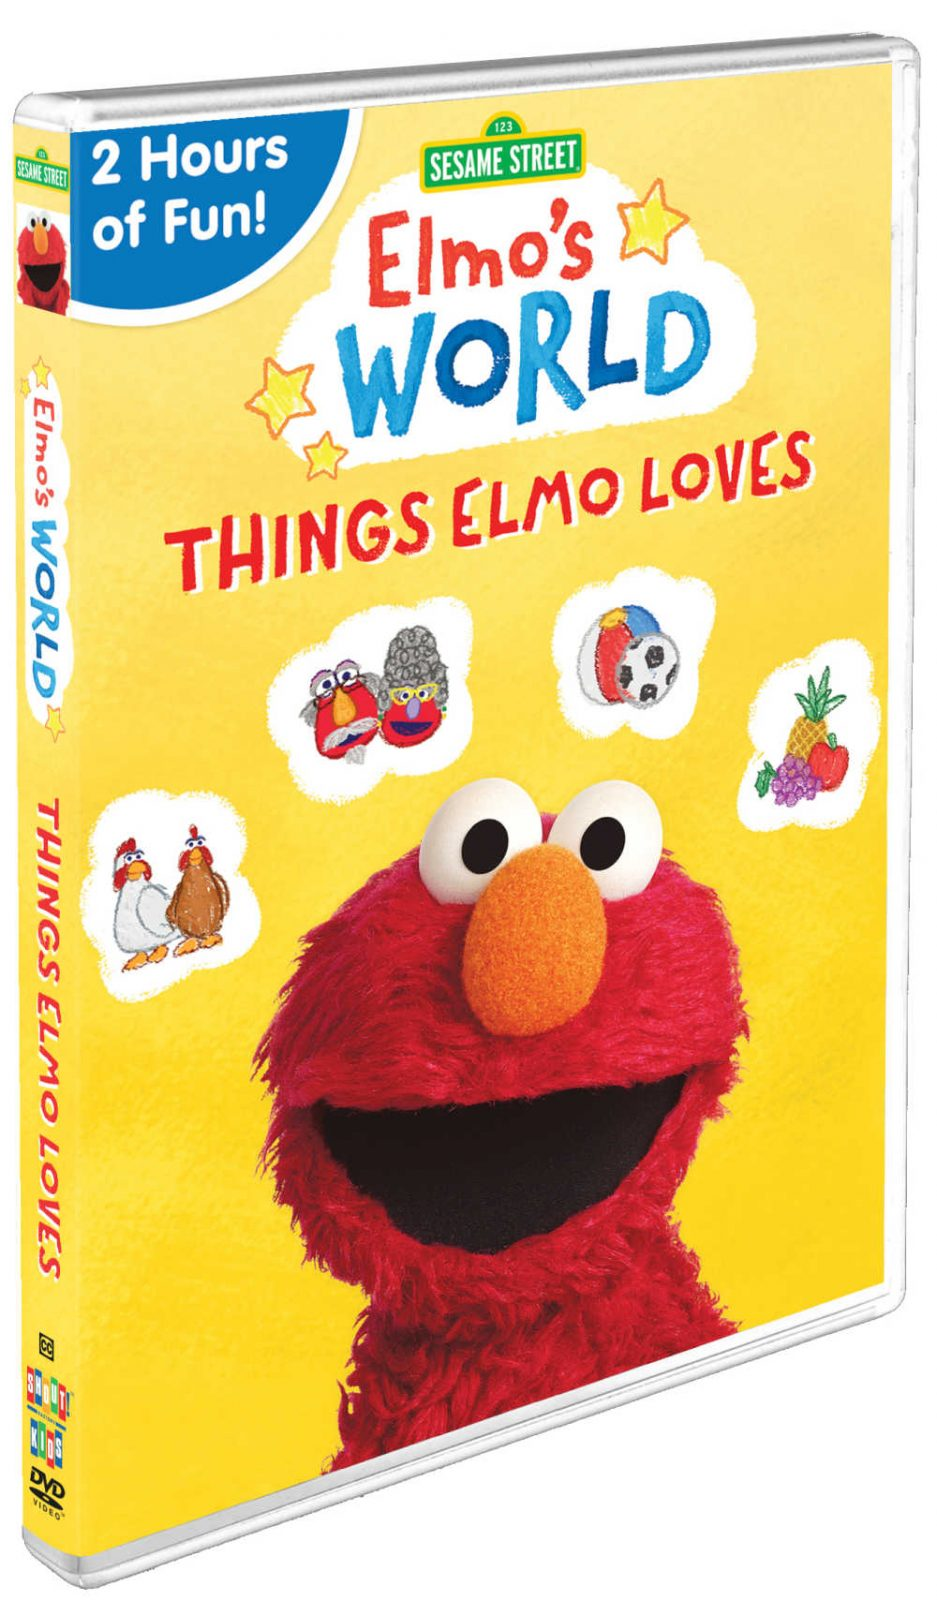 Kids can have fun learning all about the things Elmo loves, when they watch the new Sesame Street Elmo's World DVD from Shout! Kids.